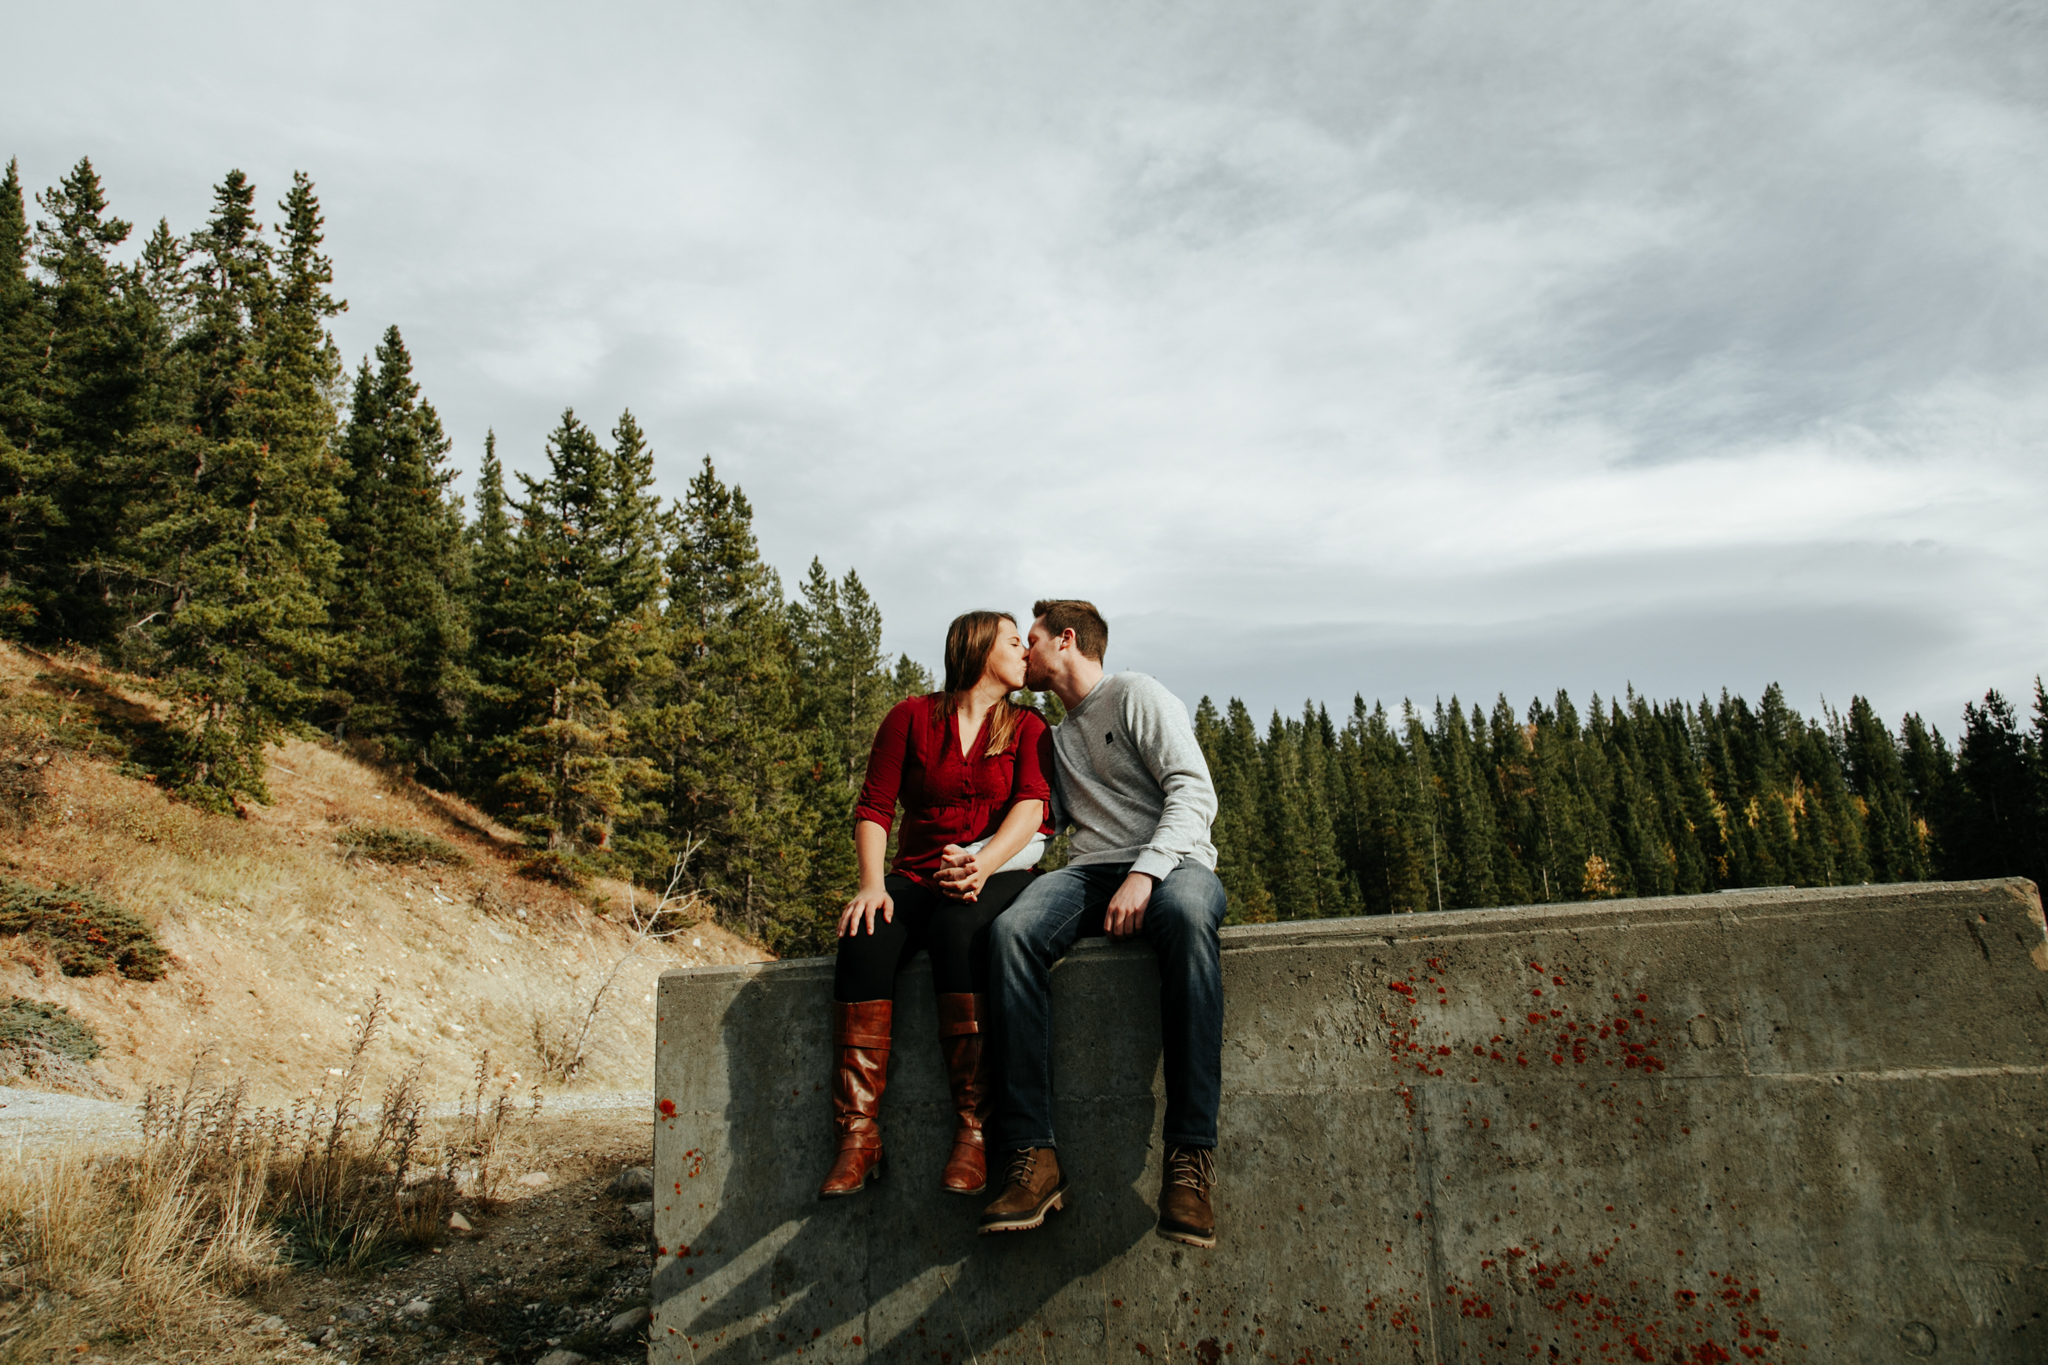 lethbridge-photographer-love-and-be-loved-photography-crowsnest-pass-engagement-andi-philip-picture-image-photo--17.jpg